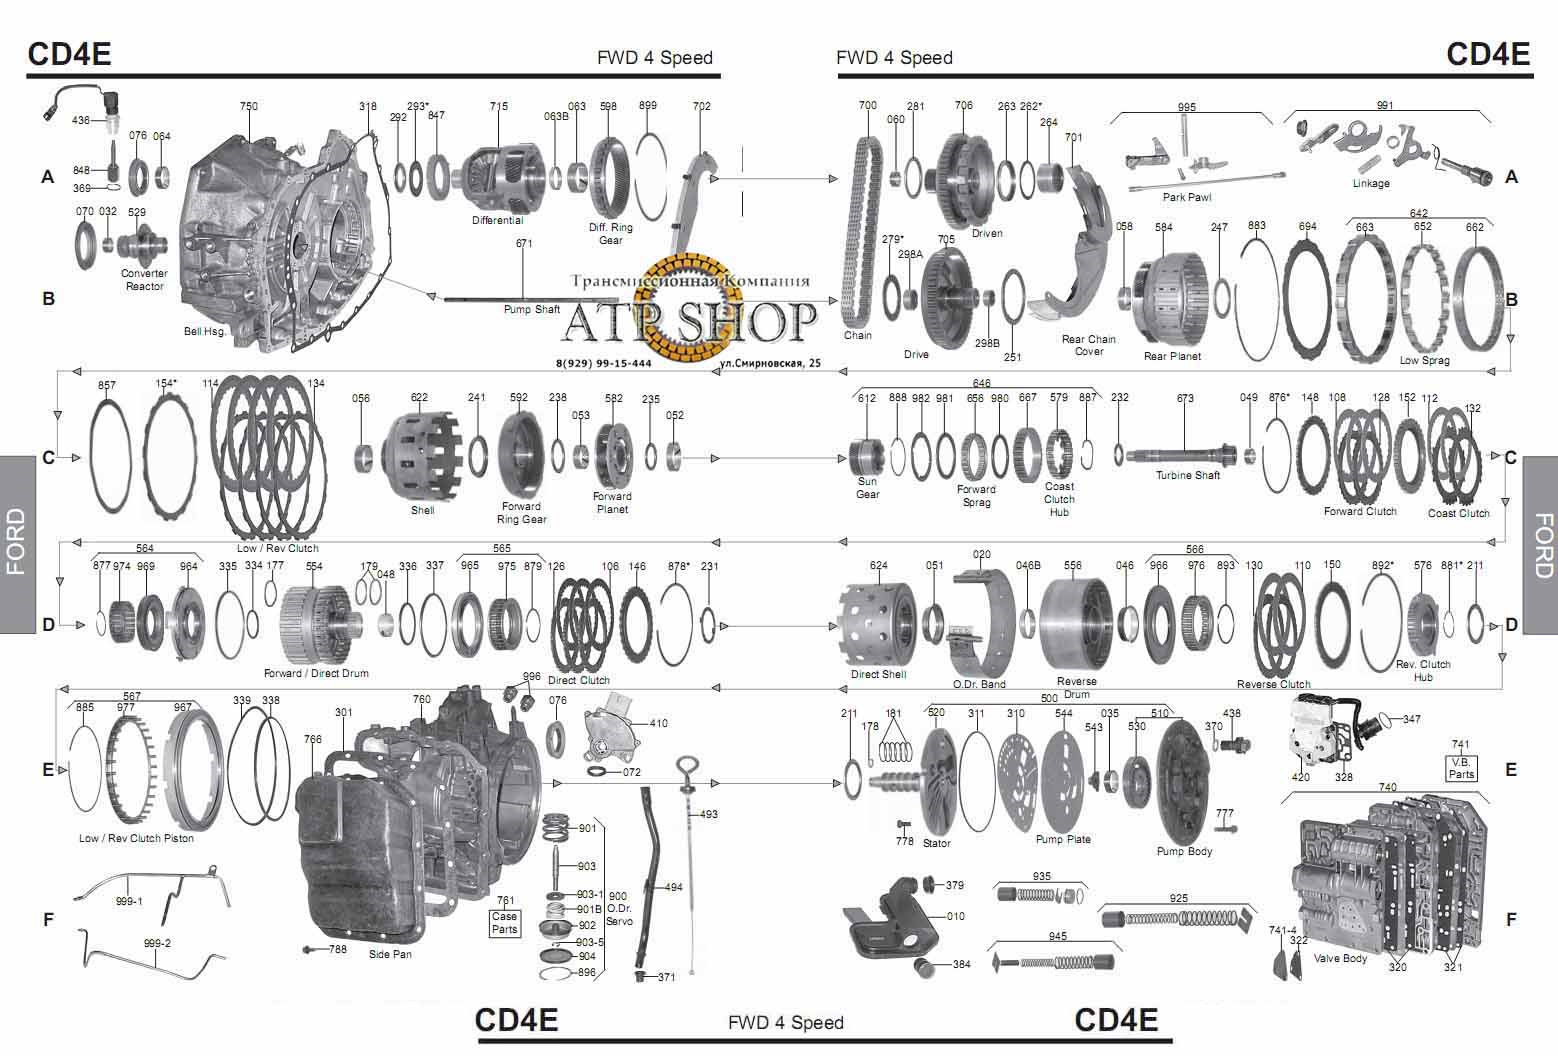 ford cd4e transmission diagram wiring diagram portal u2022 rh graphiko co CD4E Automatic Transmission CD4E Transmission Exploded View